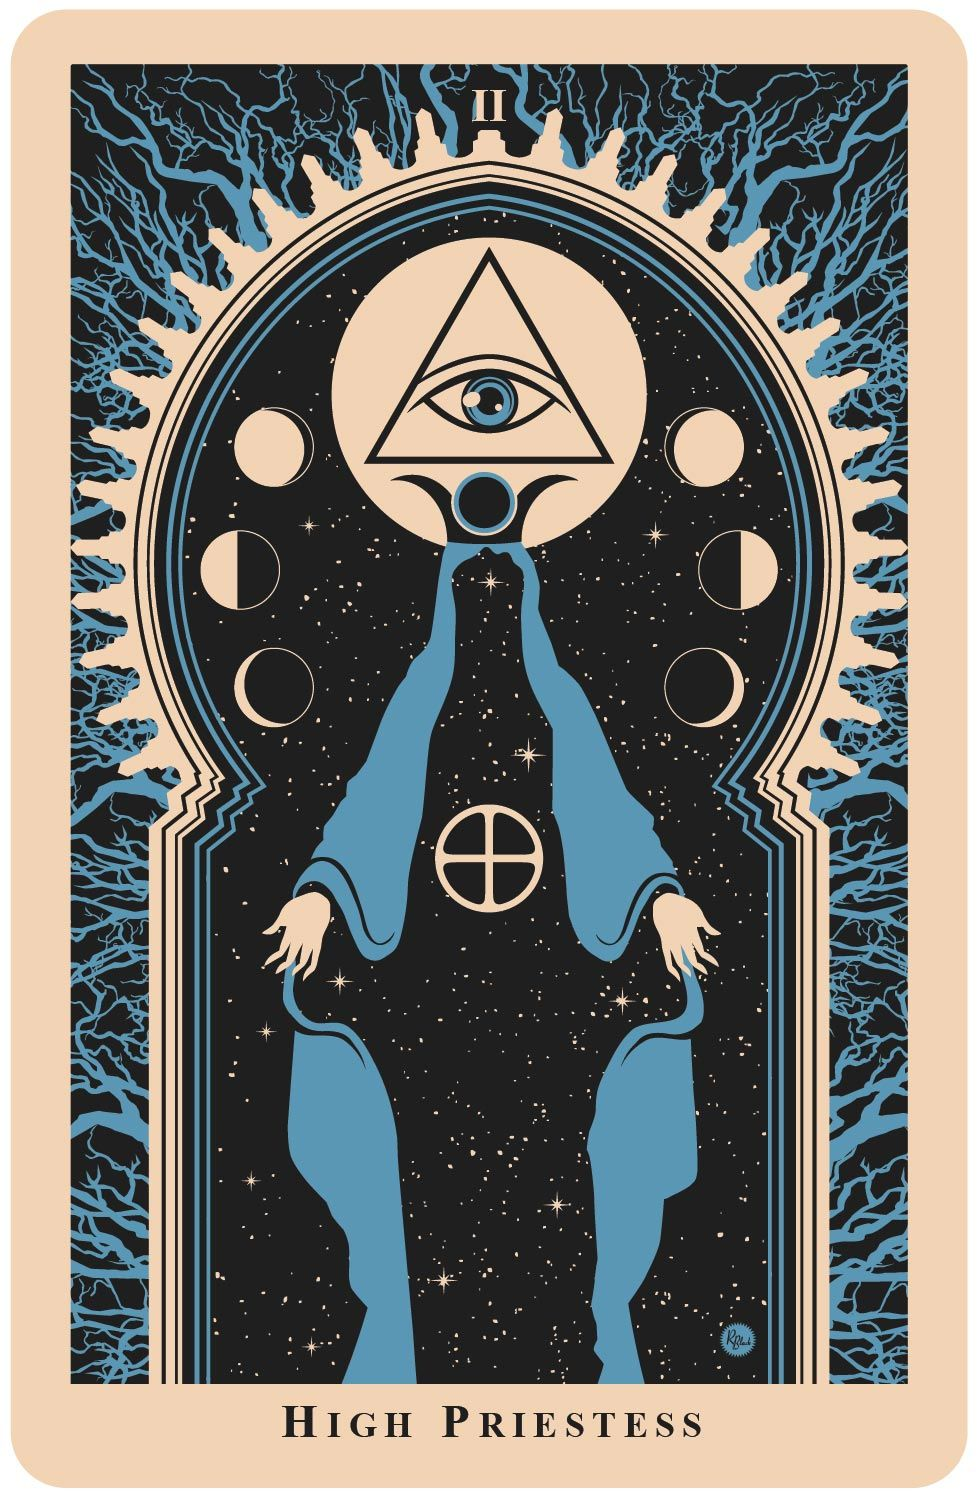 The High Priestess Card | Eso téri co | Tarot, Tarot cards